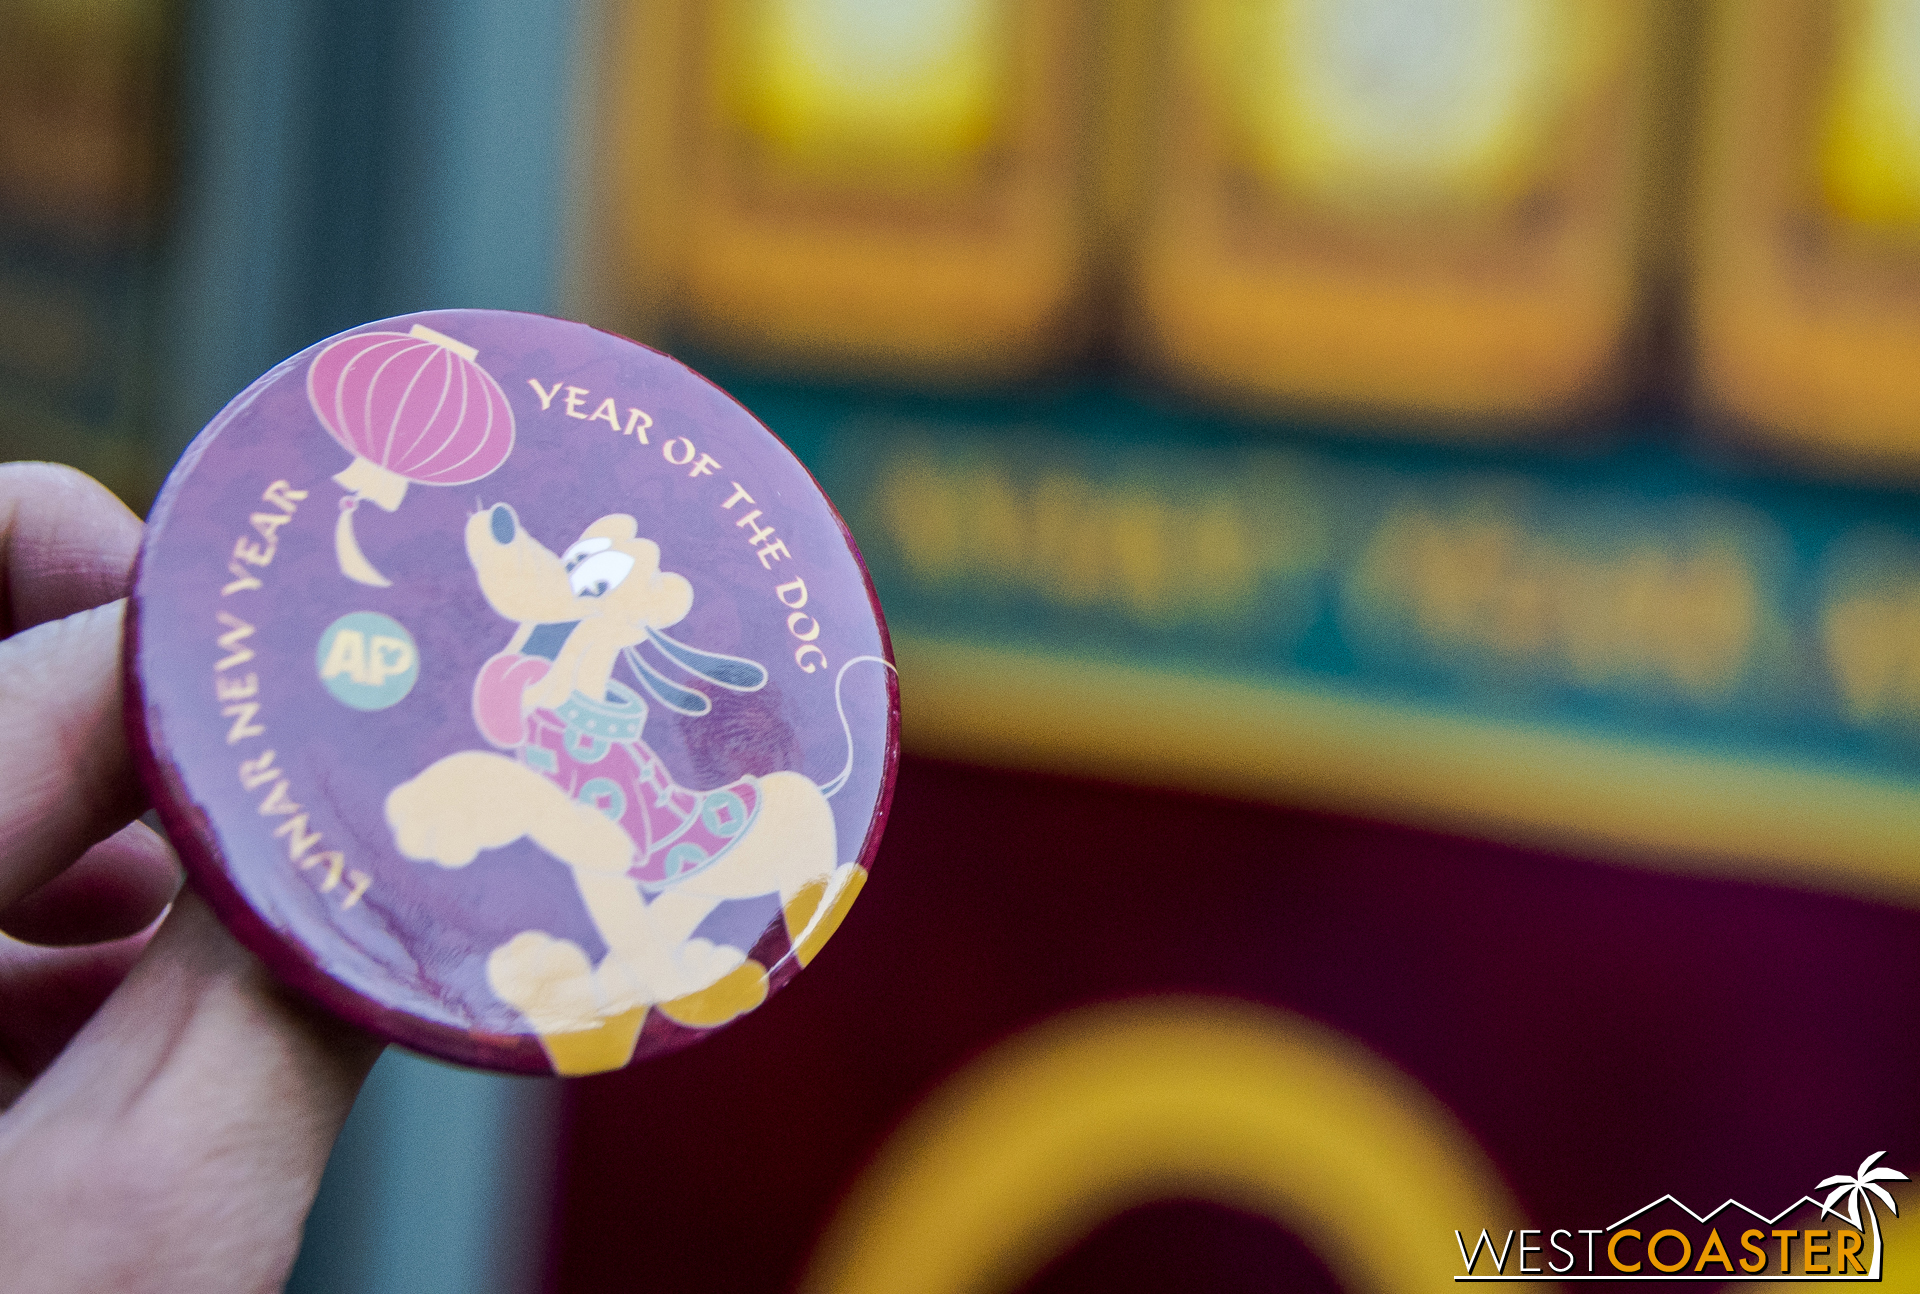 Annual Passholders can also swing by the AP corner located just left of the Garden Grill and get their free Year of the Dog pin, featuring Pluto!